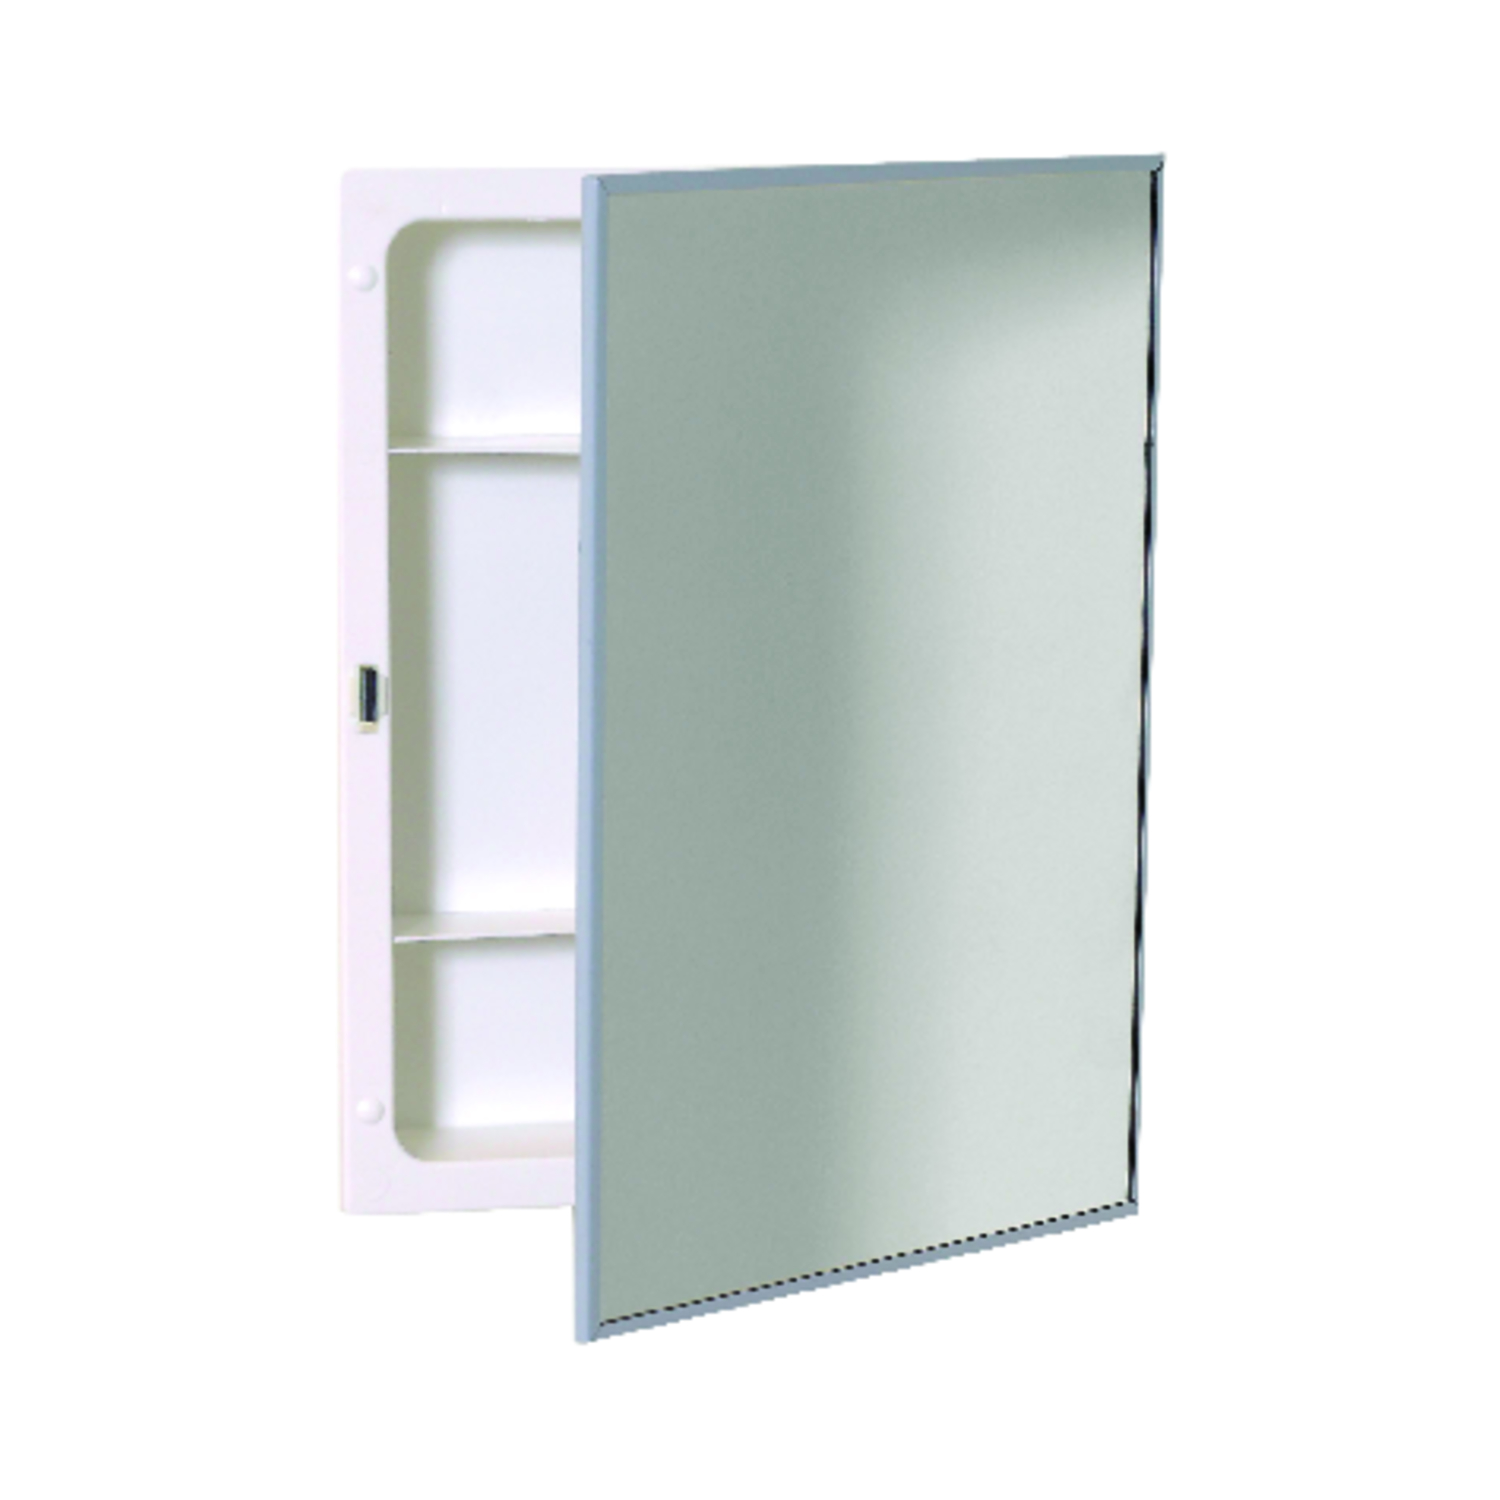 hight resolution of zenith 20 1 8 in h x 16 1 8 in w x 3 25 in d rectangle medicine cabinet ace hardware